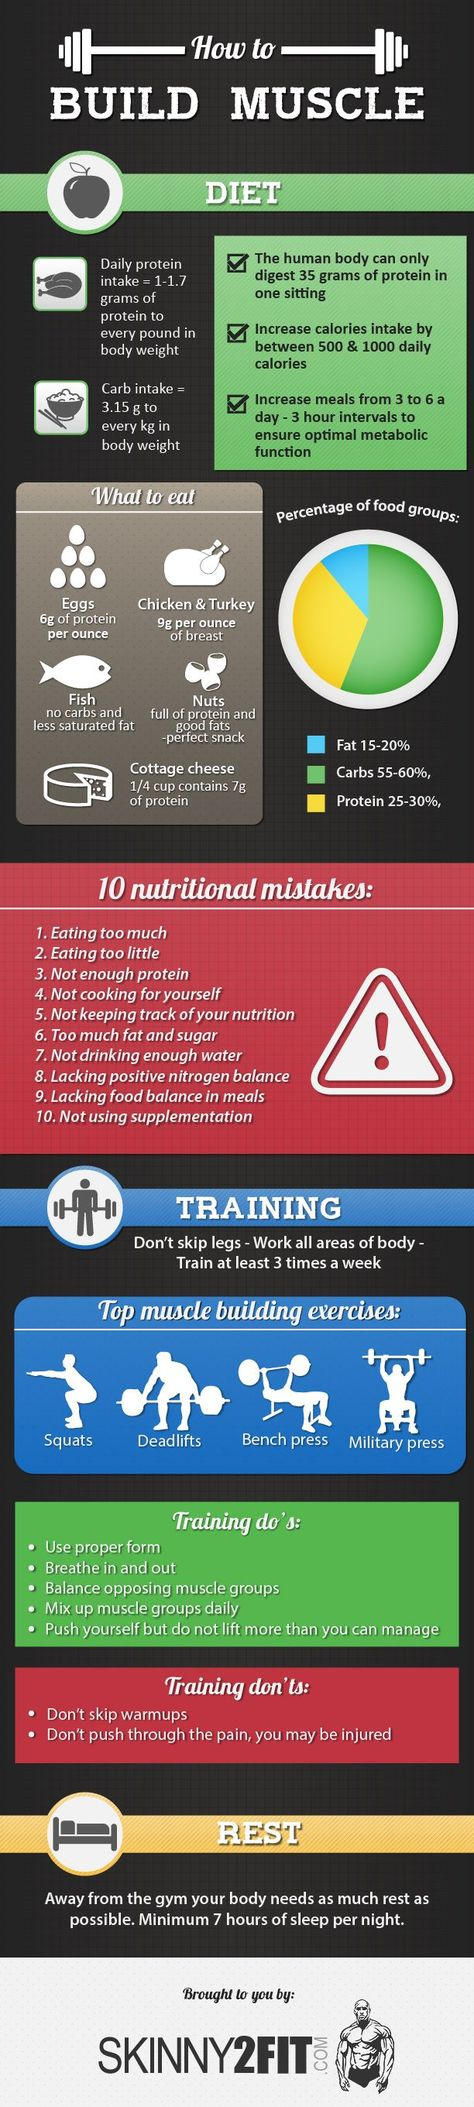 How to build muscle [infographic]